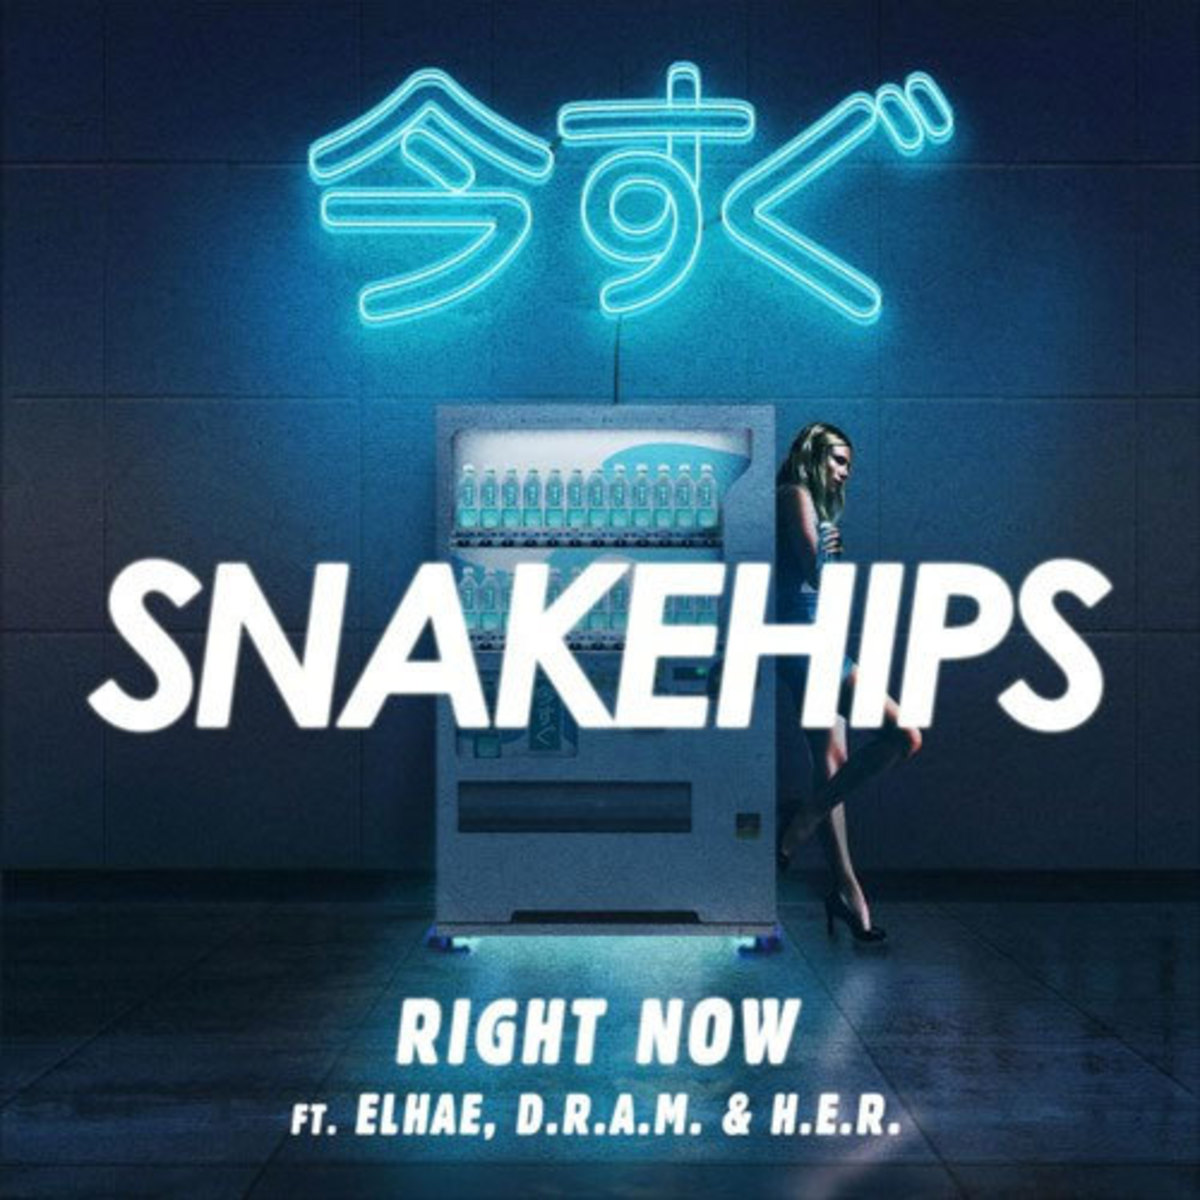 snakeships-right-now.jpg